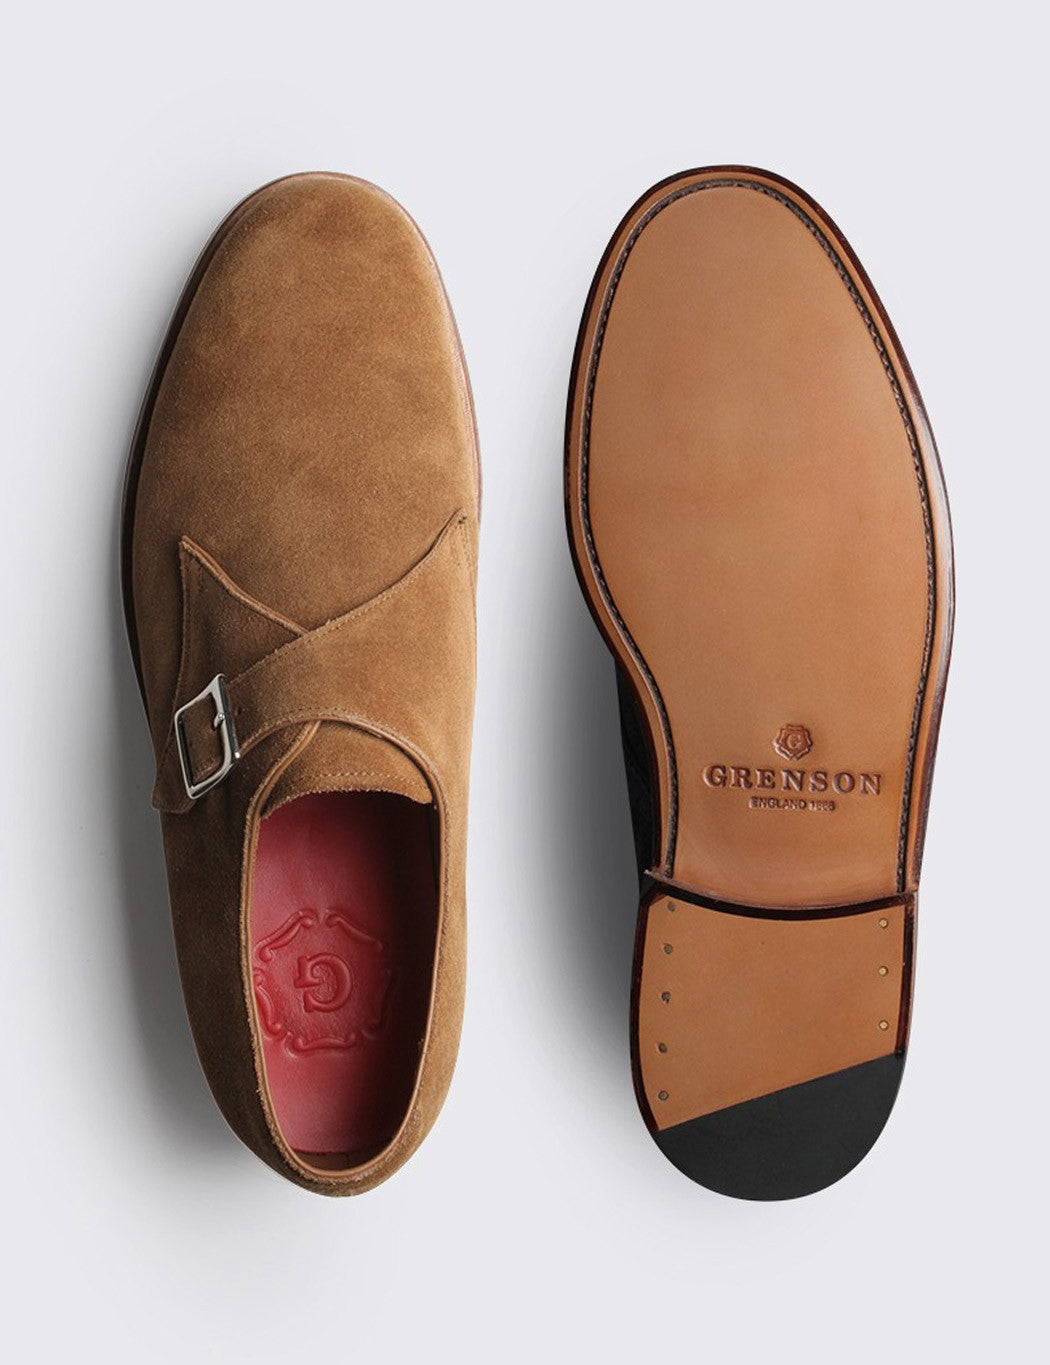 Grenson Nathan Suede Single Buckle Monk - Snuff